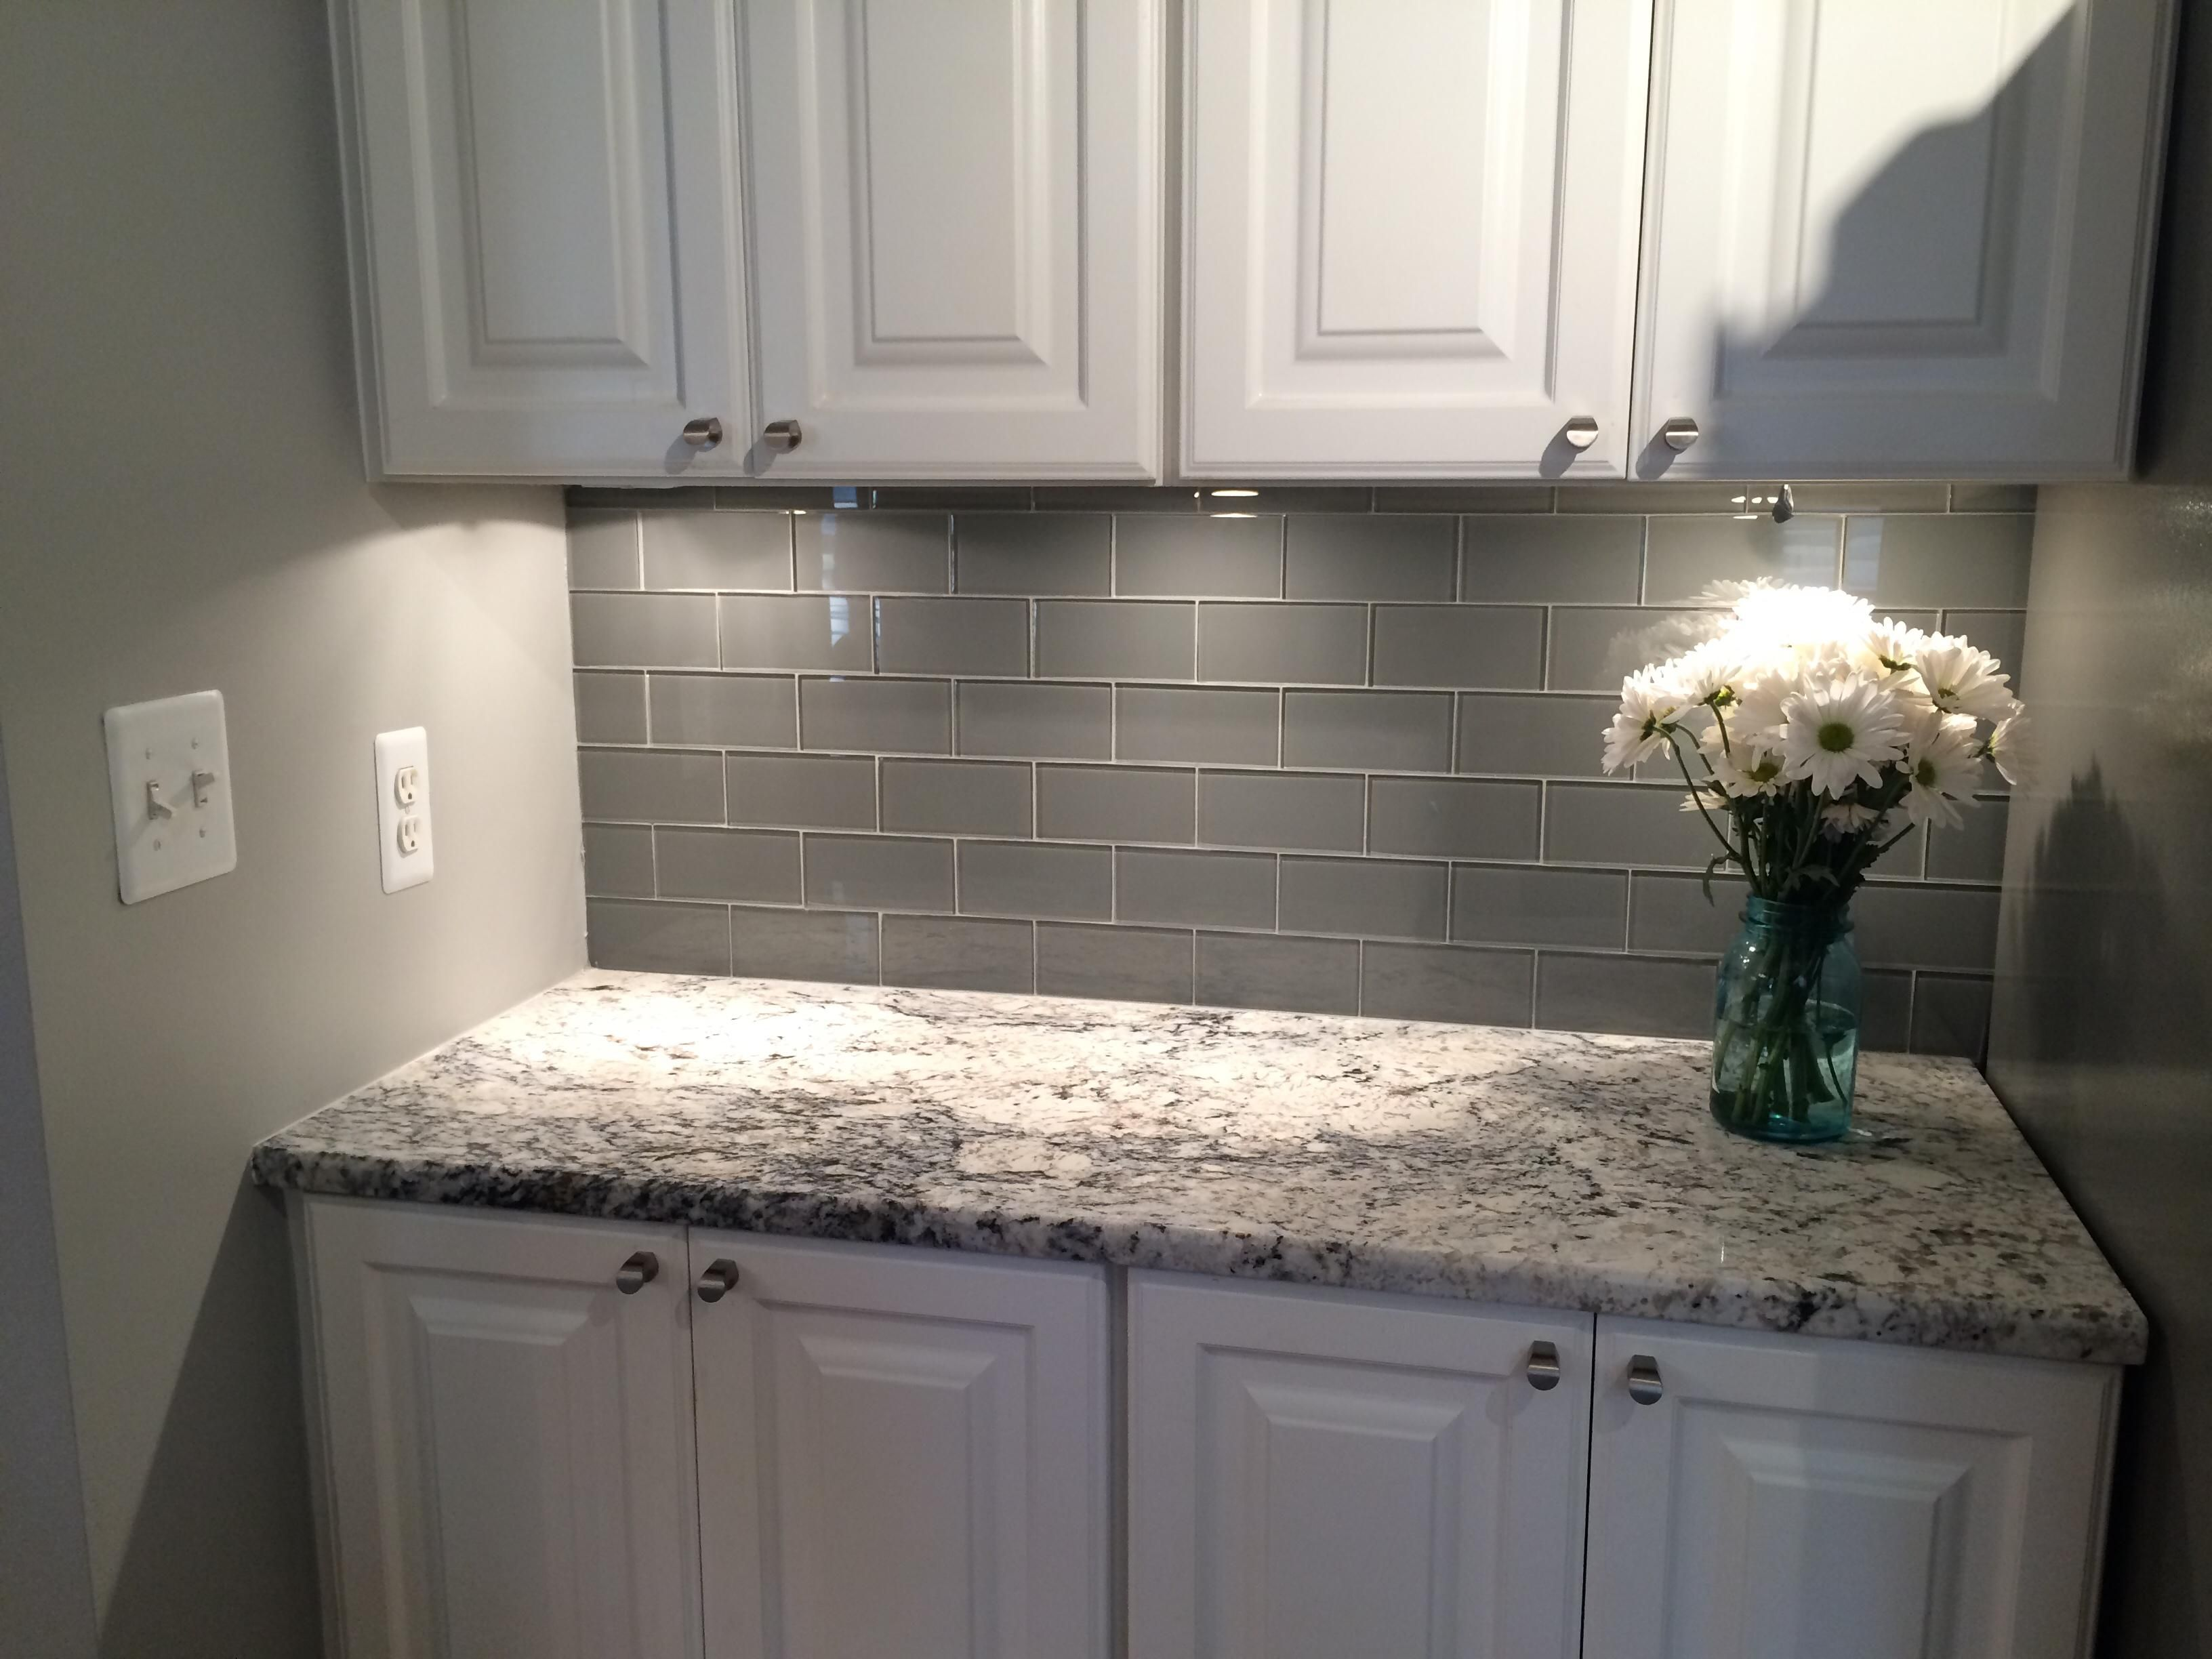 White Tile Backsplash Kitchen 3 Subway With Grey Grout